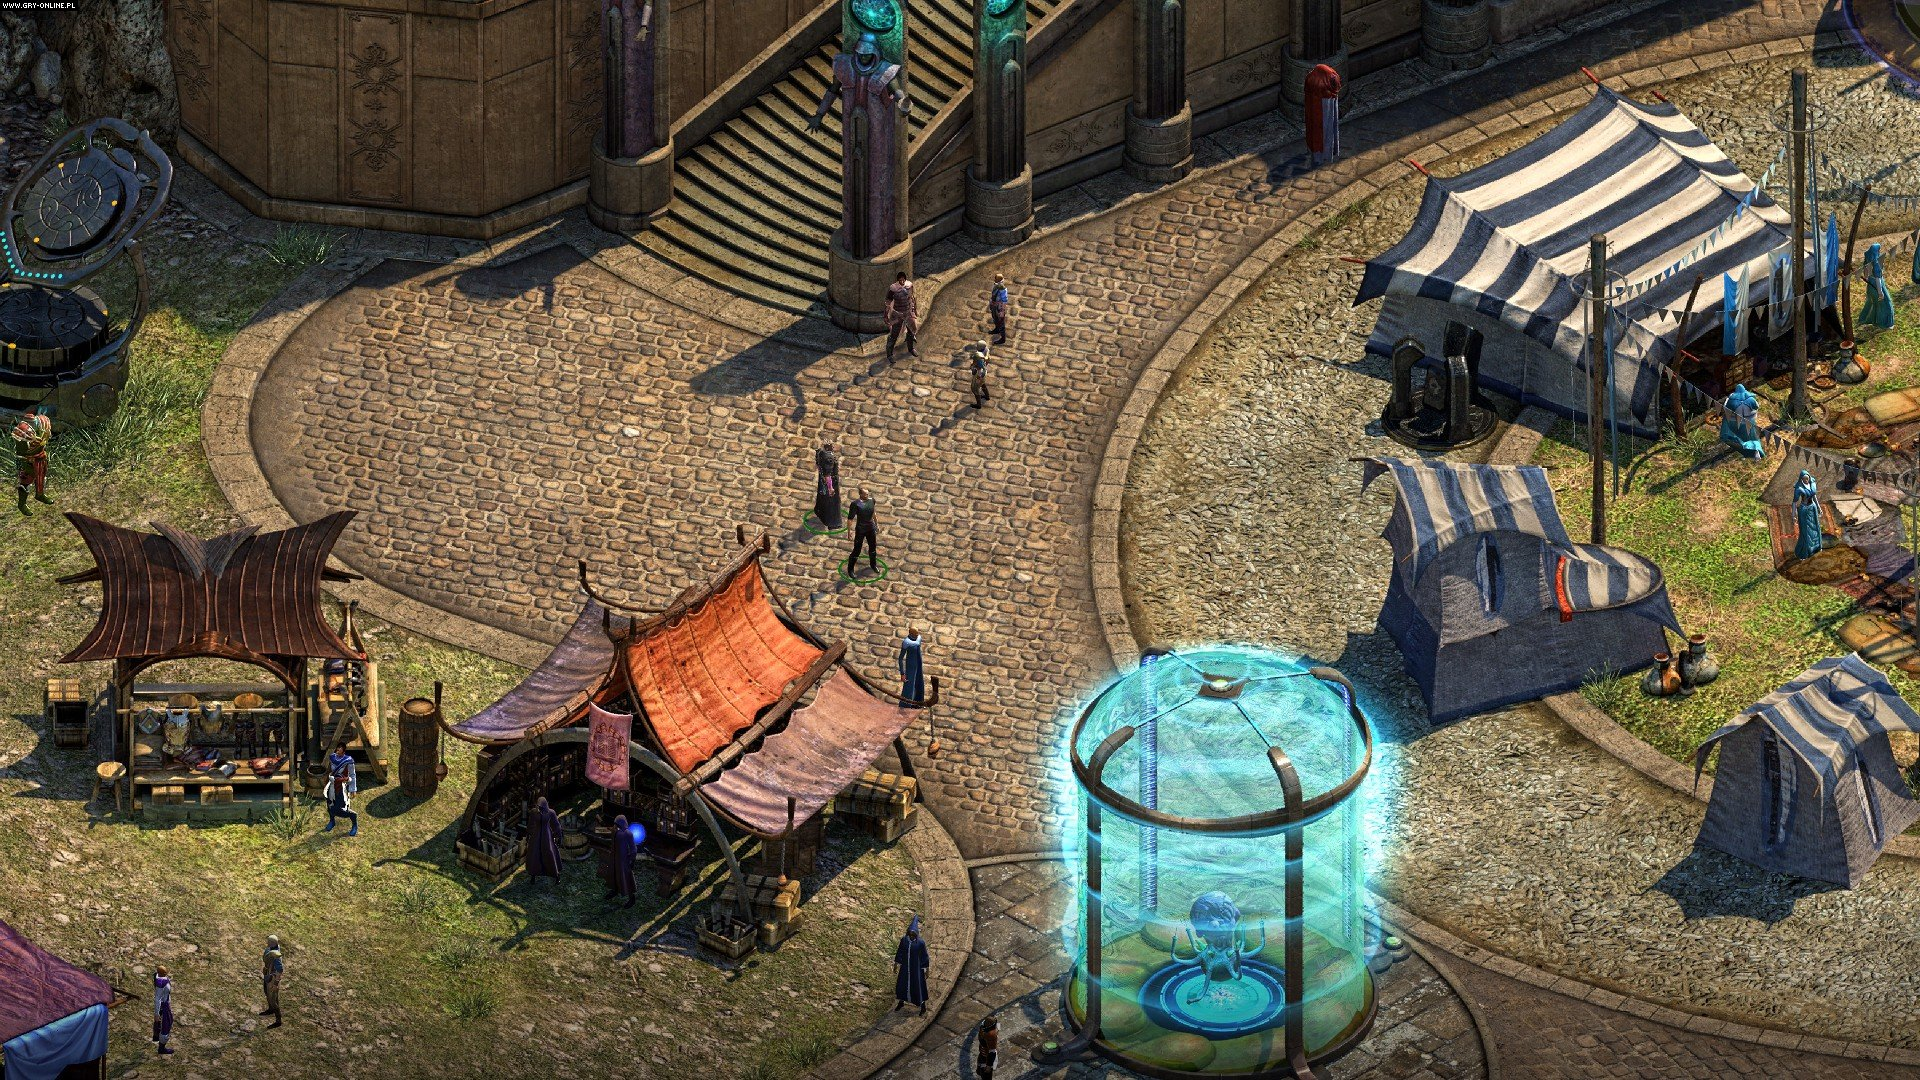 Torment: Tides of Numenera PC Games Image 24/28, inXile entertainment, Techland